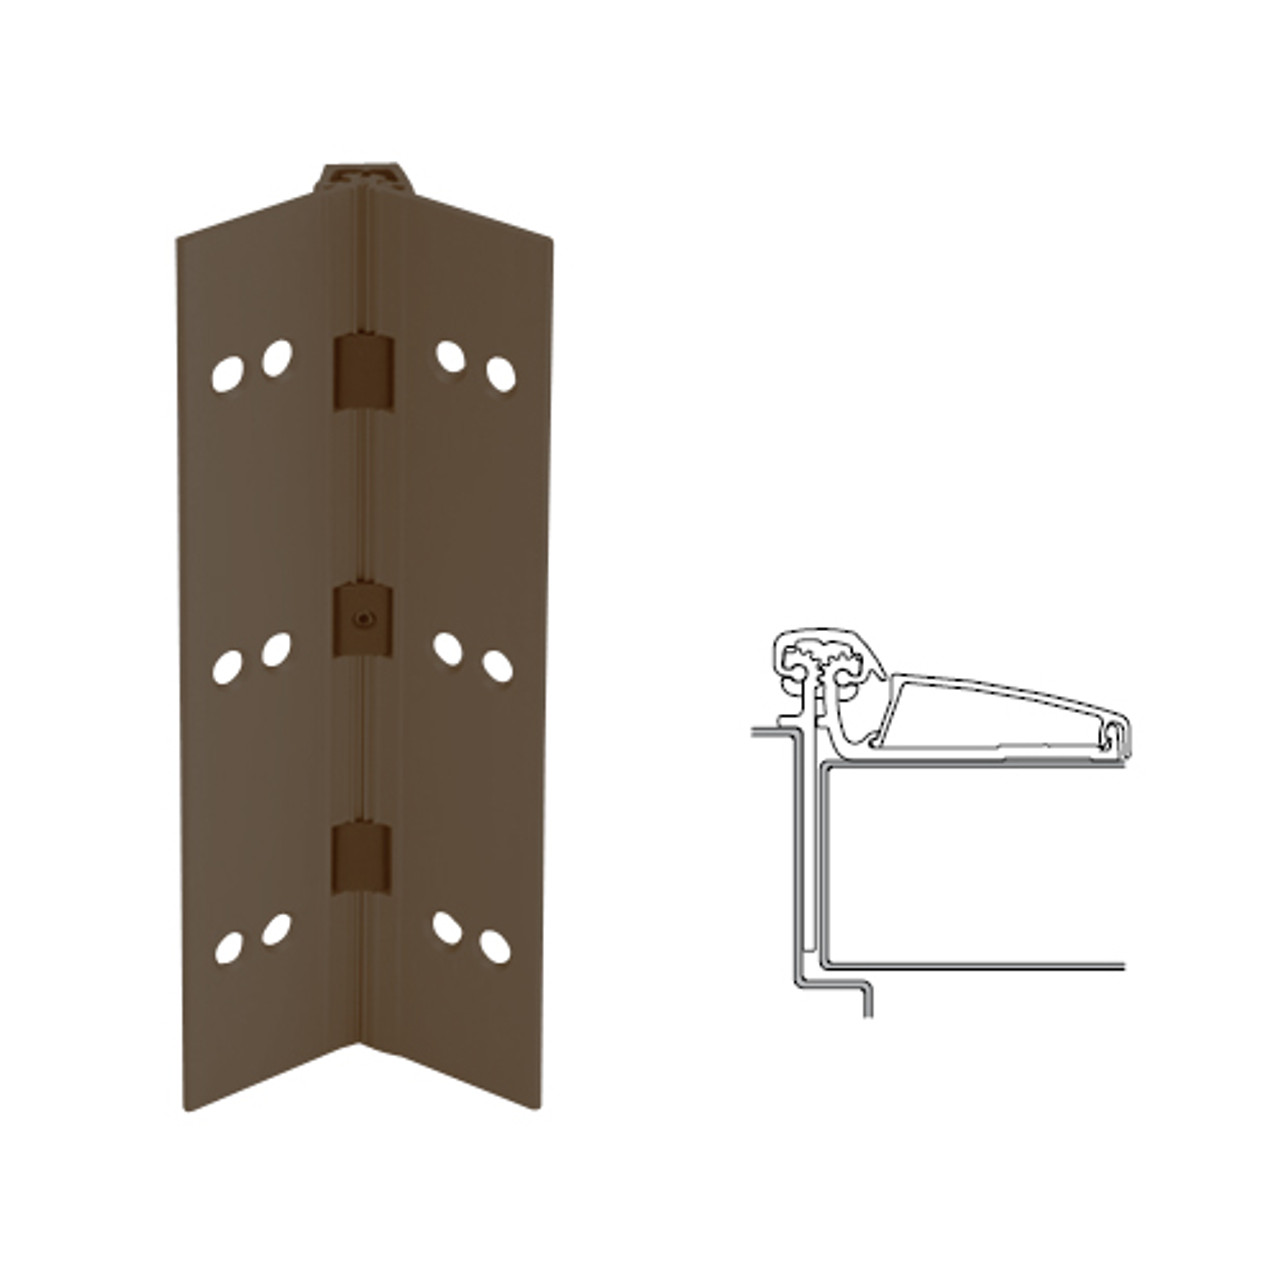 046XY-313AN-95-SECWDHM IVES Adjustable Half Surface Continuous Geared Hinges with Security Screws - Hex Pin Drive in Dark Bronze Anodized